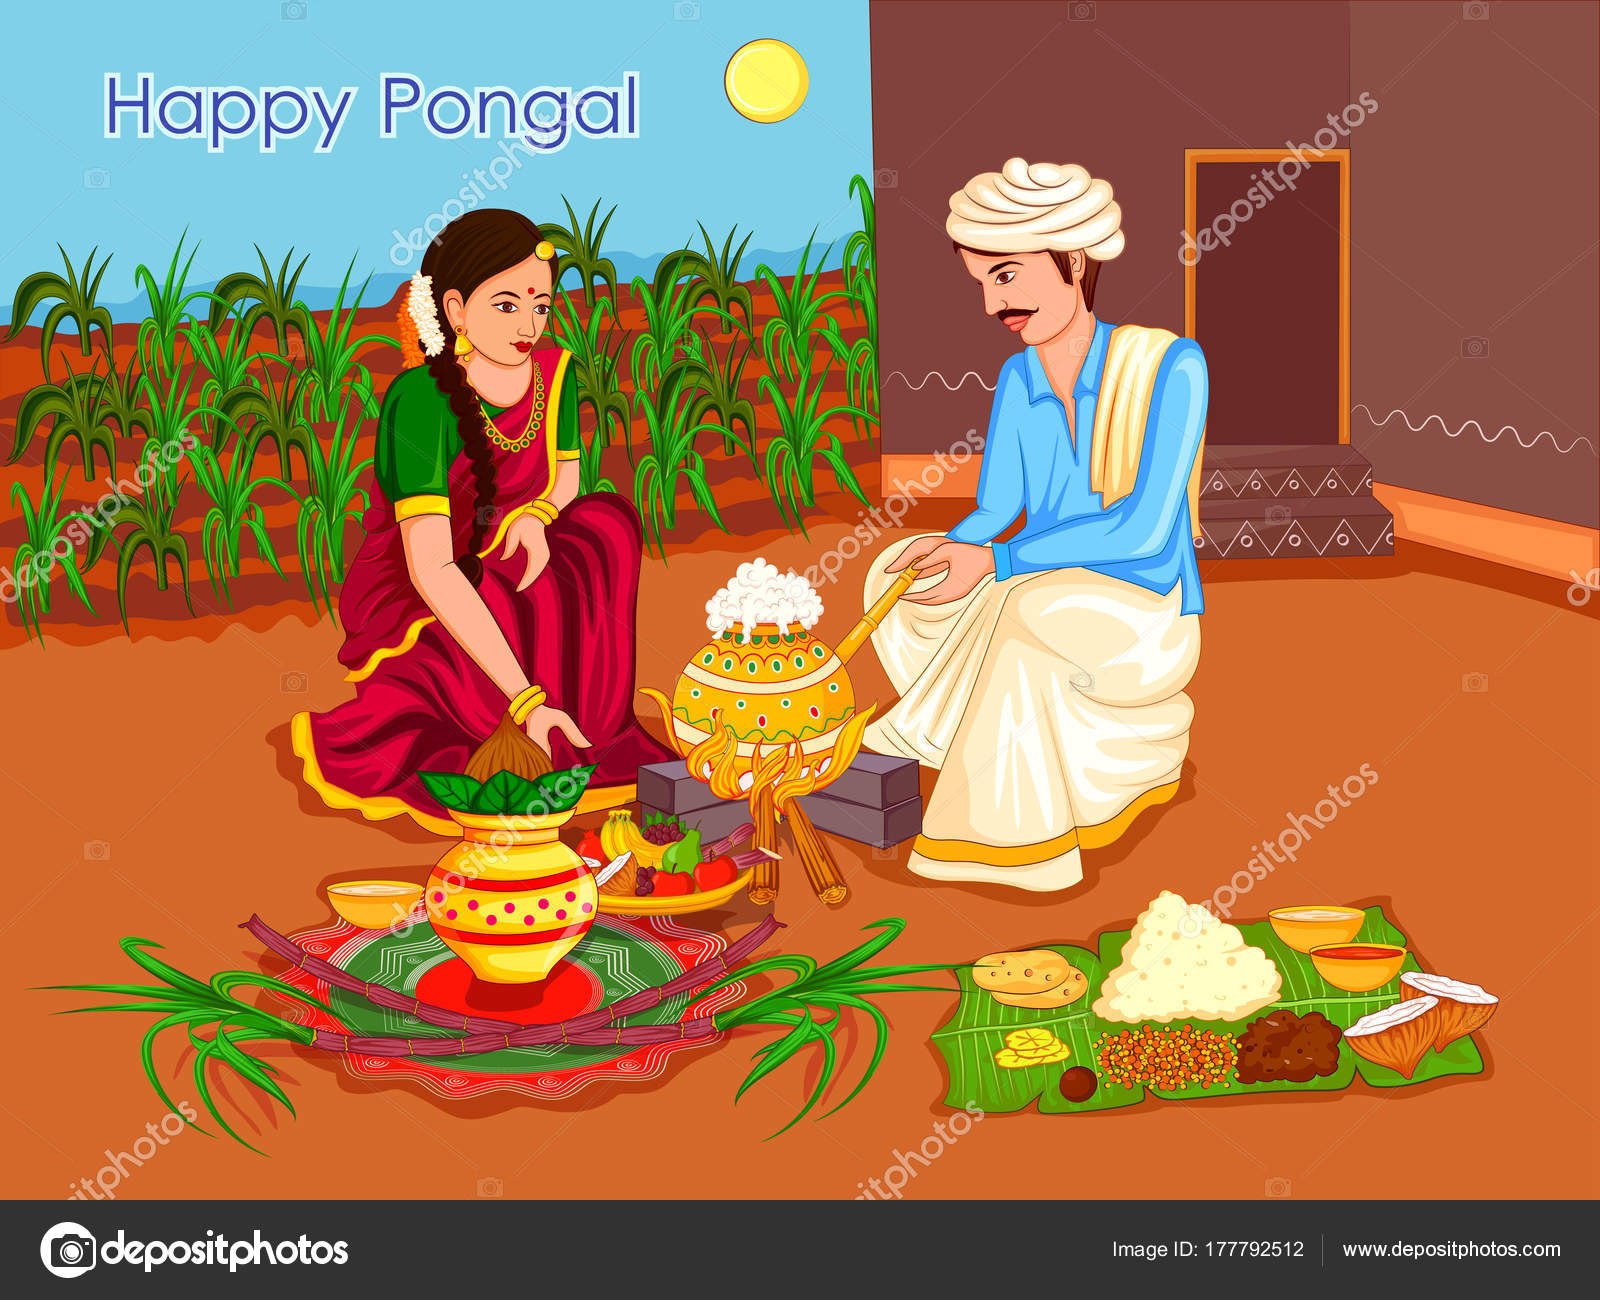 Happy Pongal religious traditional festival of Tamil Nadu